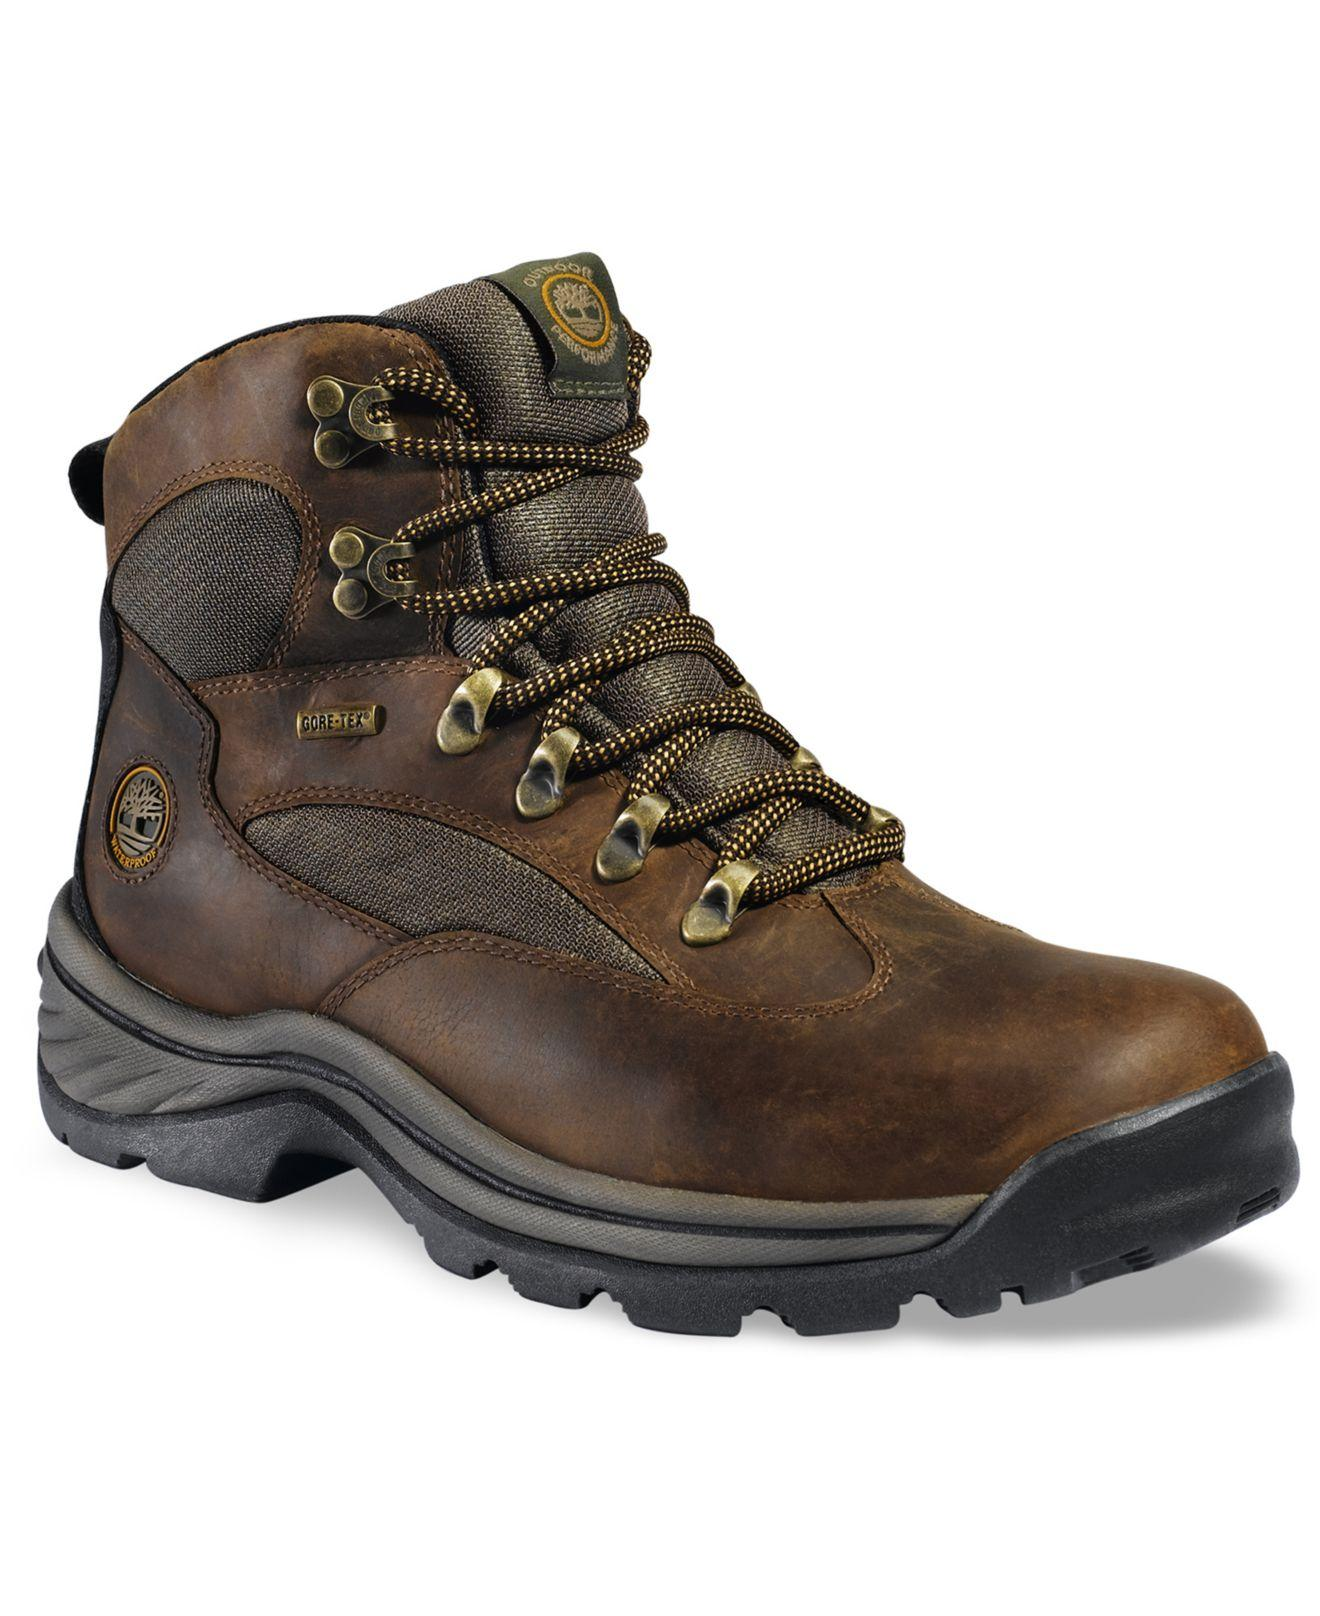 Timberland Waterproof Chocorua Trail Gore Tex Hiker Boots